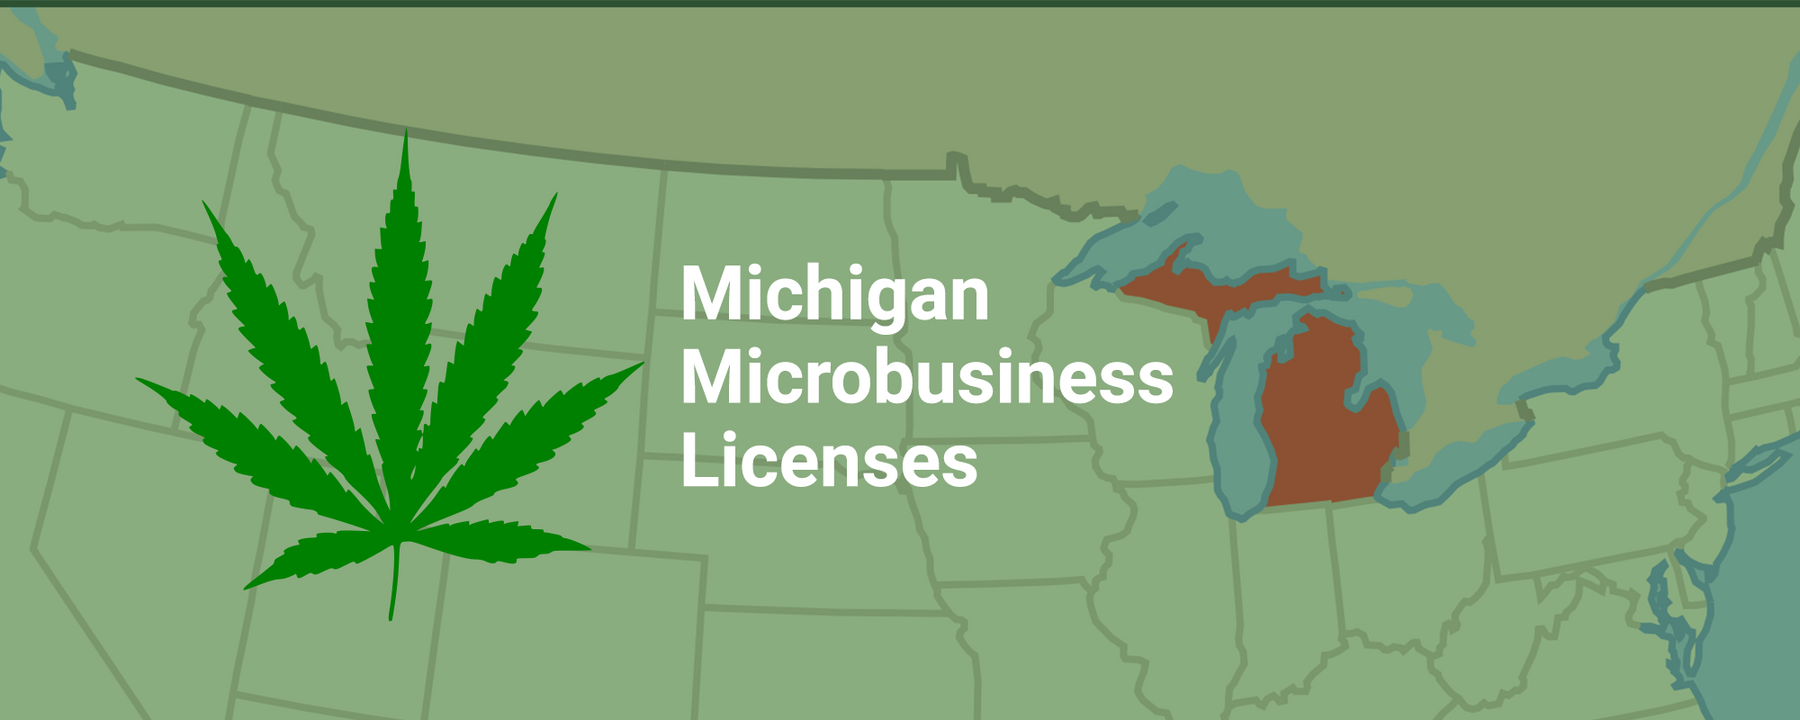 Michigan Microbusiness License Cannabis Cannabis Microbusiness License Michigan PurePressure Blog